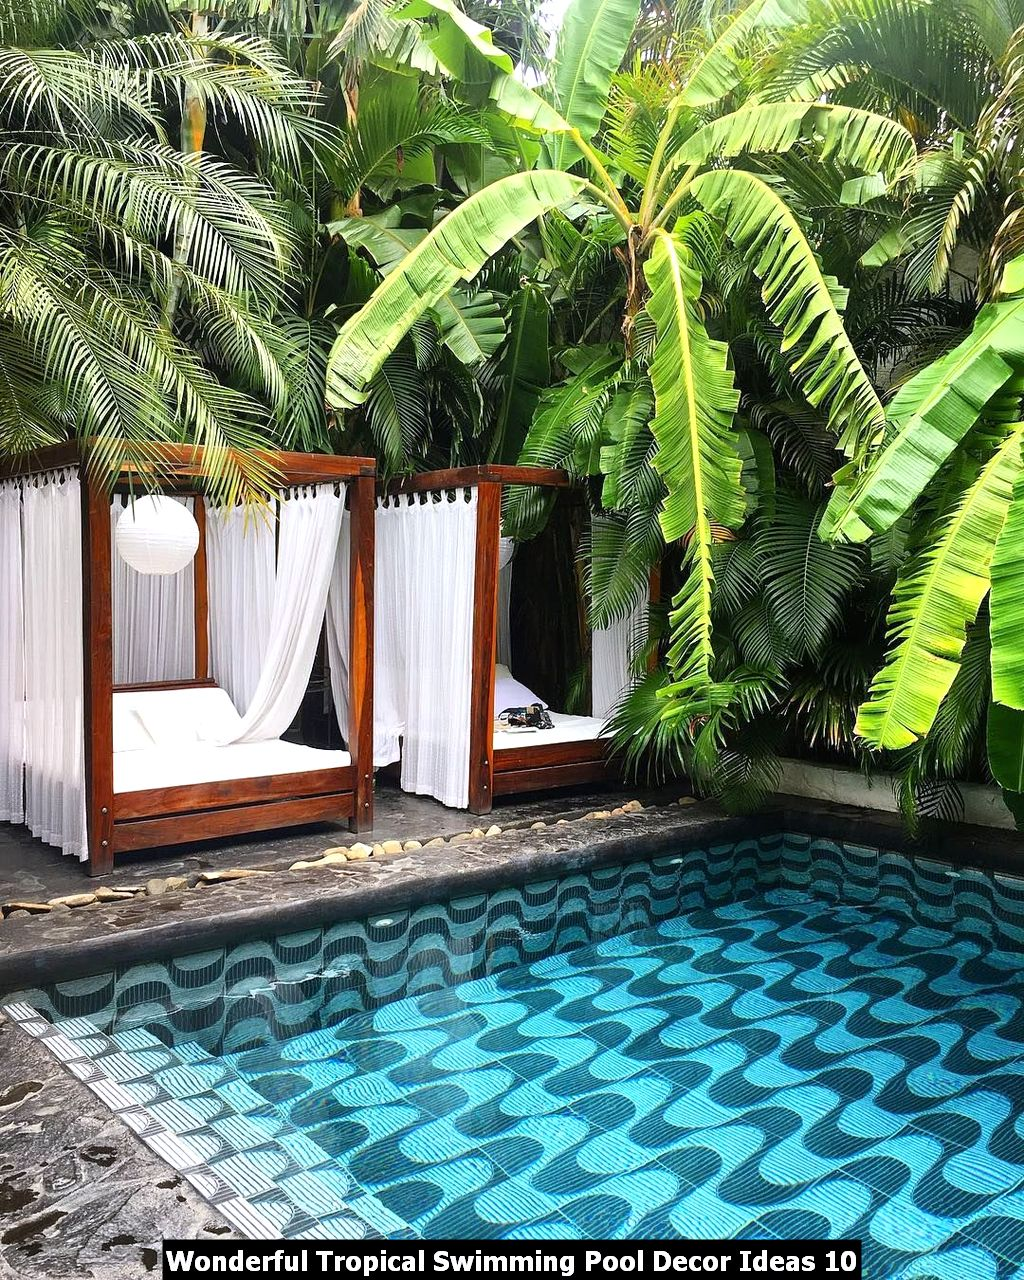 Wonderful Tropical Swimming Pool Decor Ideas 10